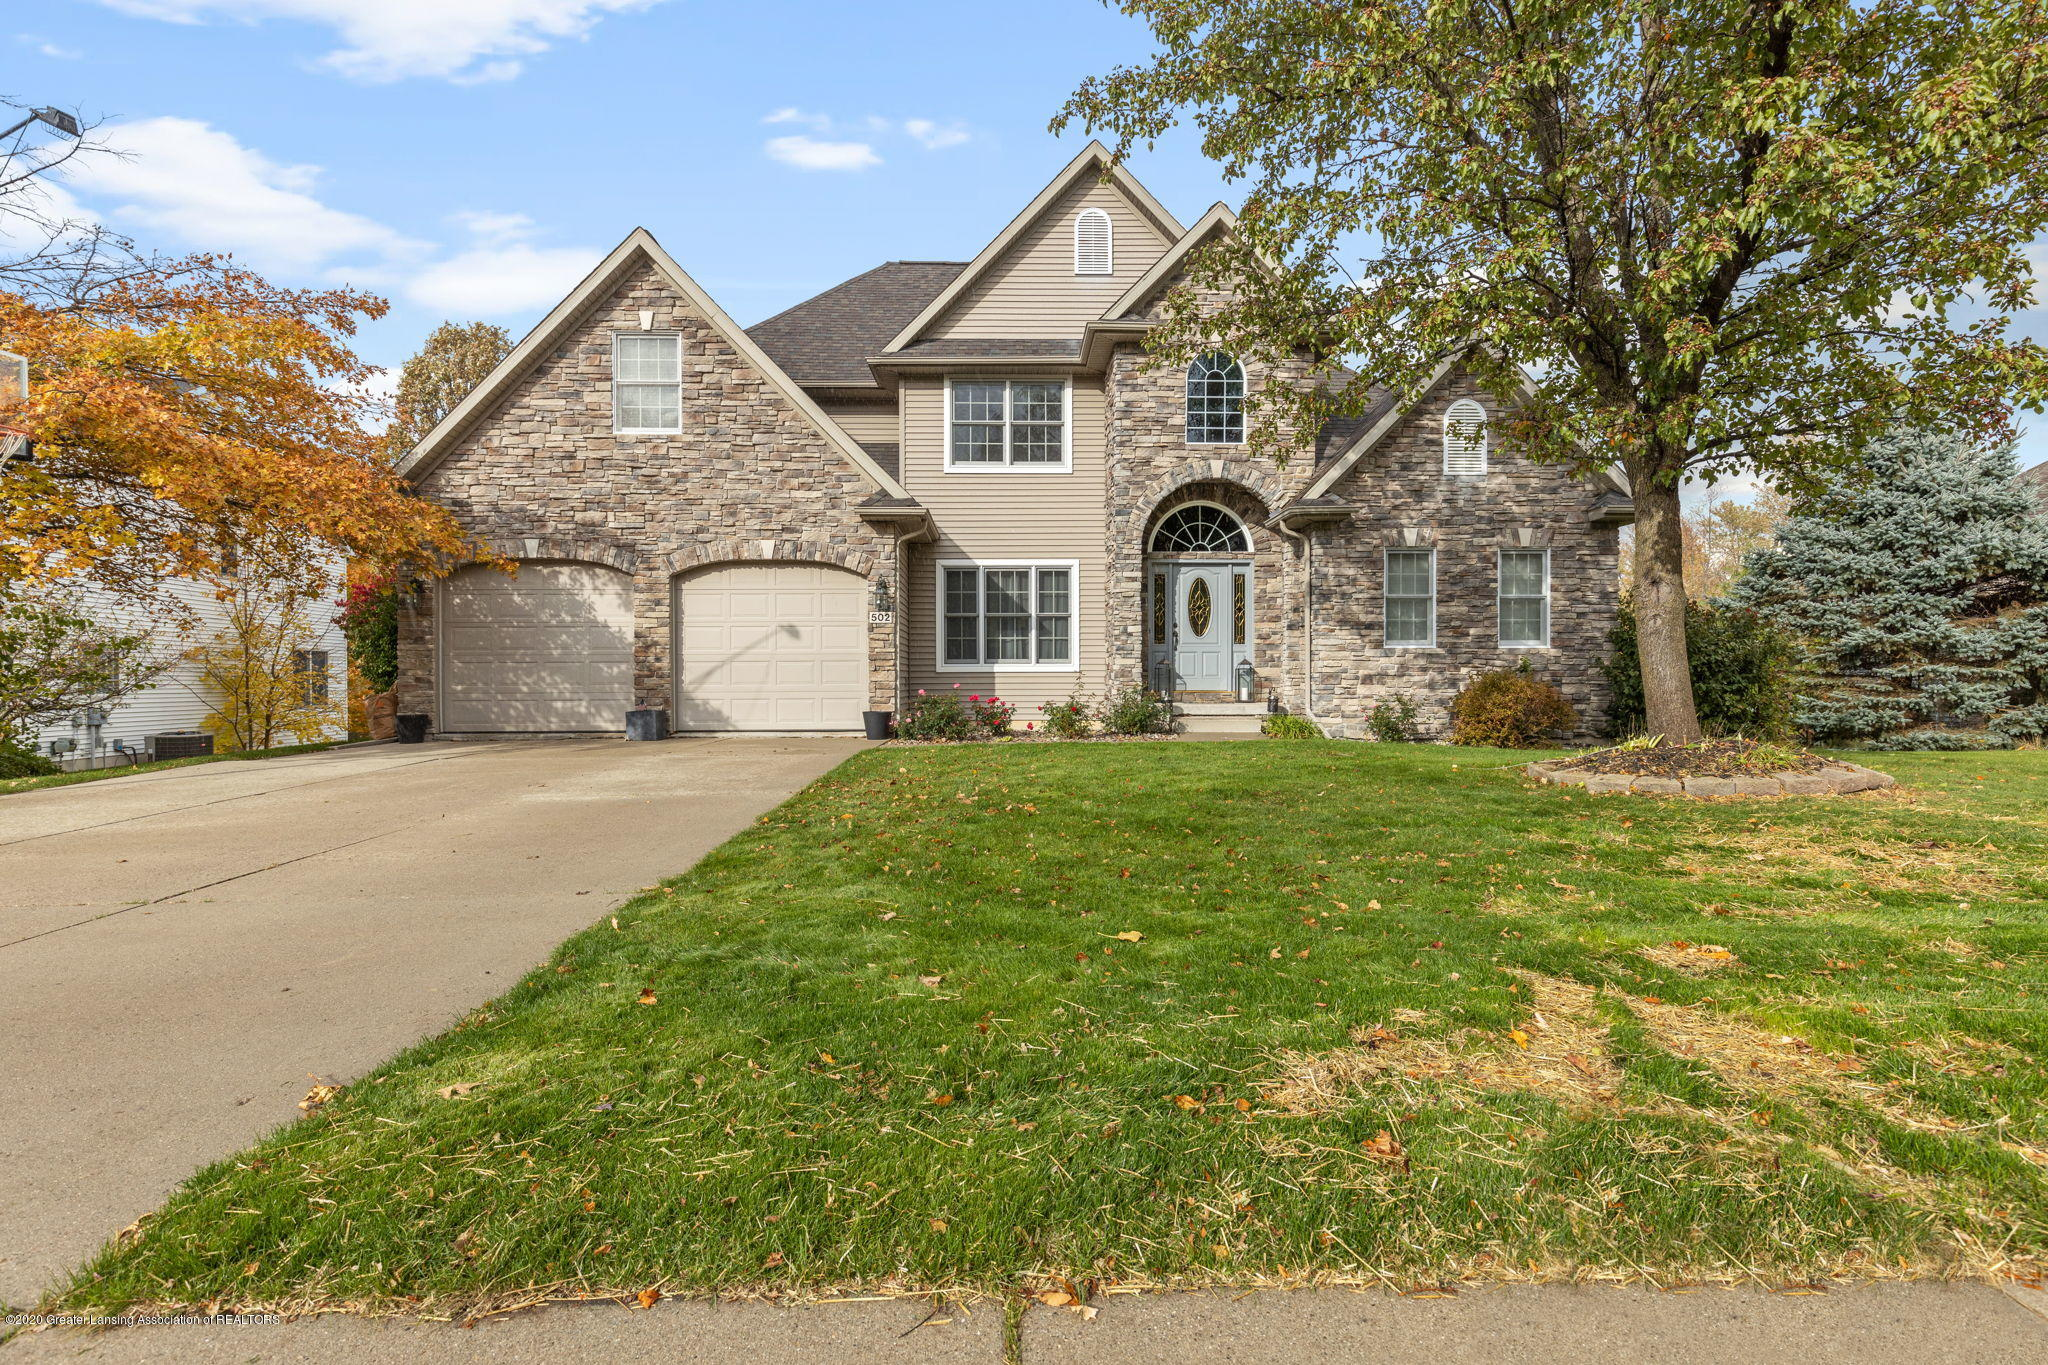 502 W Dill Dr - Front - 1